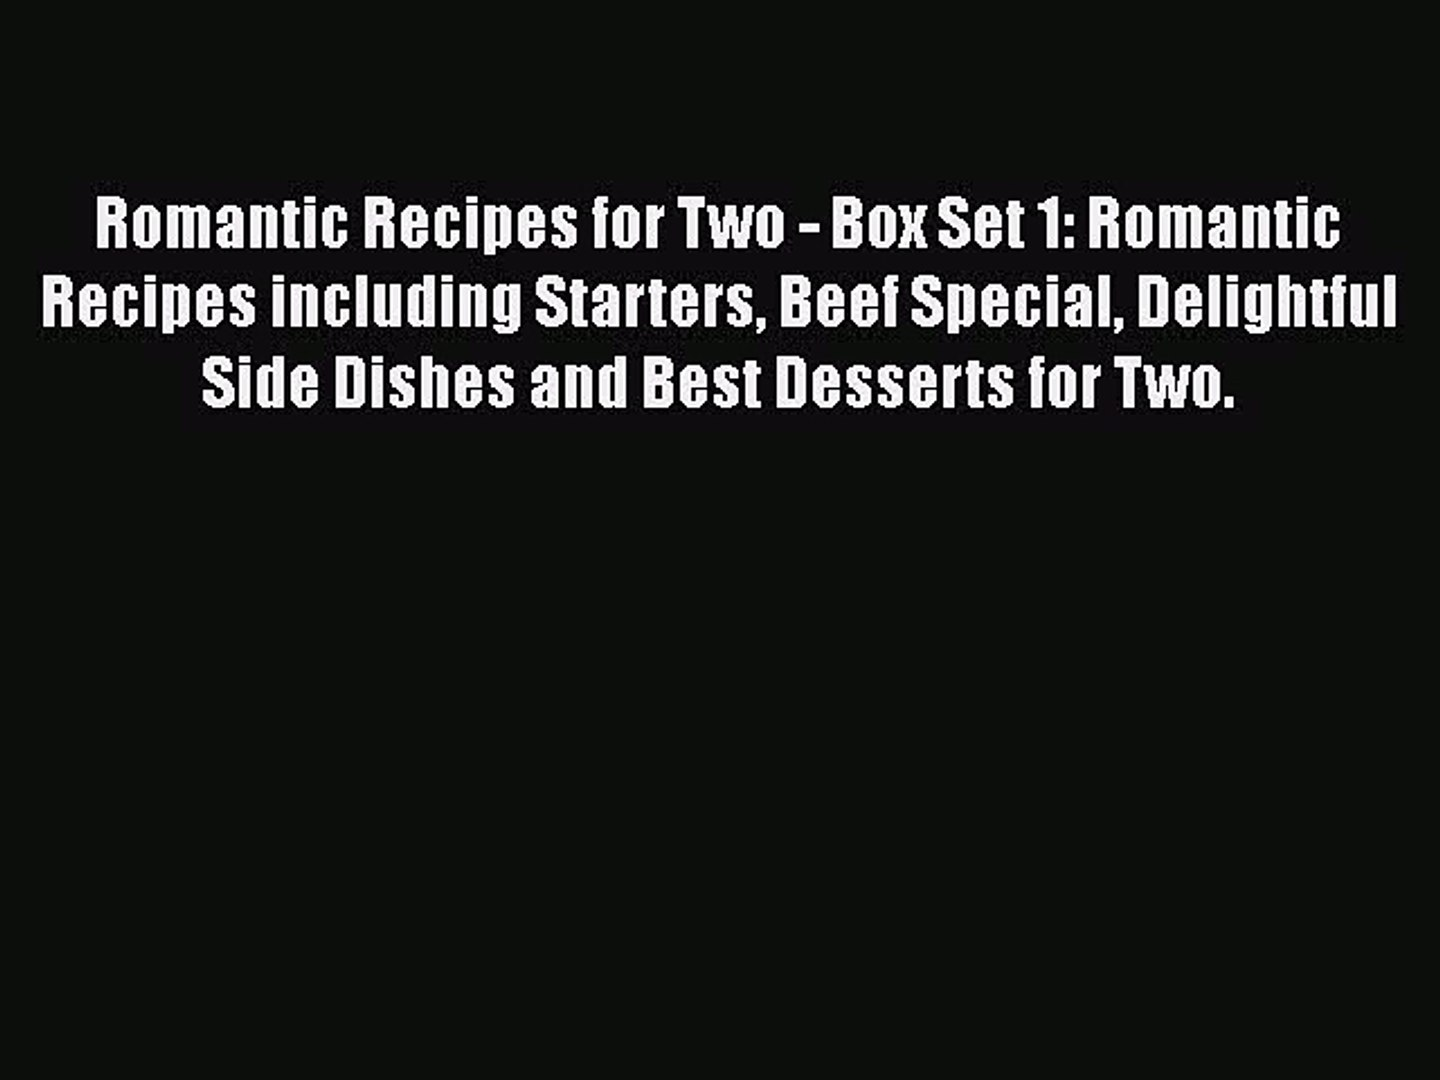 [Read Book] Romantic Recipes for Two - Box Set 1: Romantic Recipes including Starters Beef